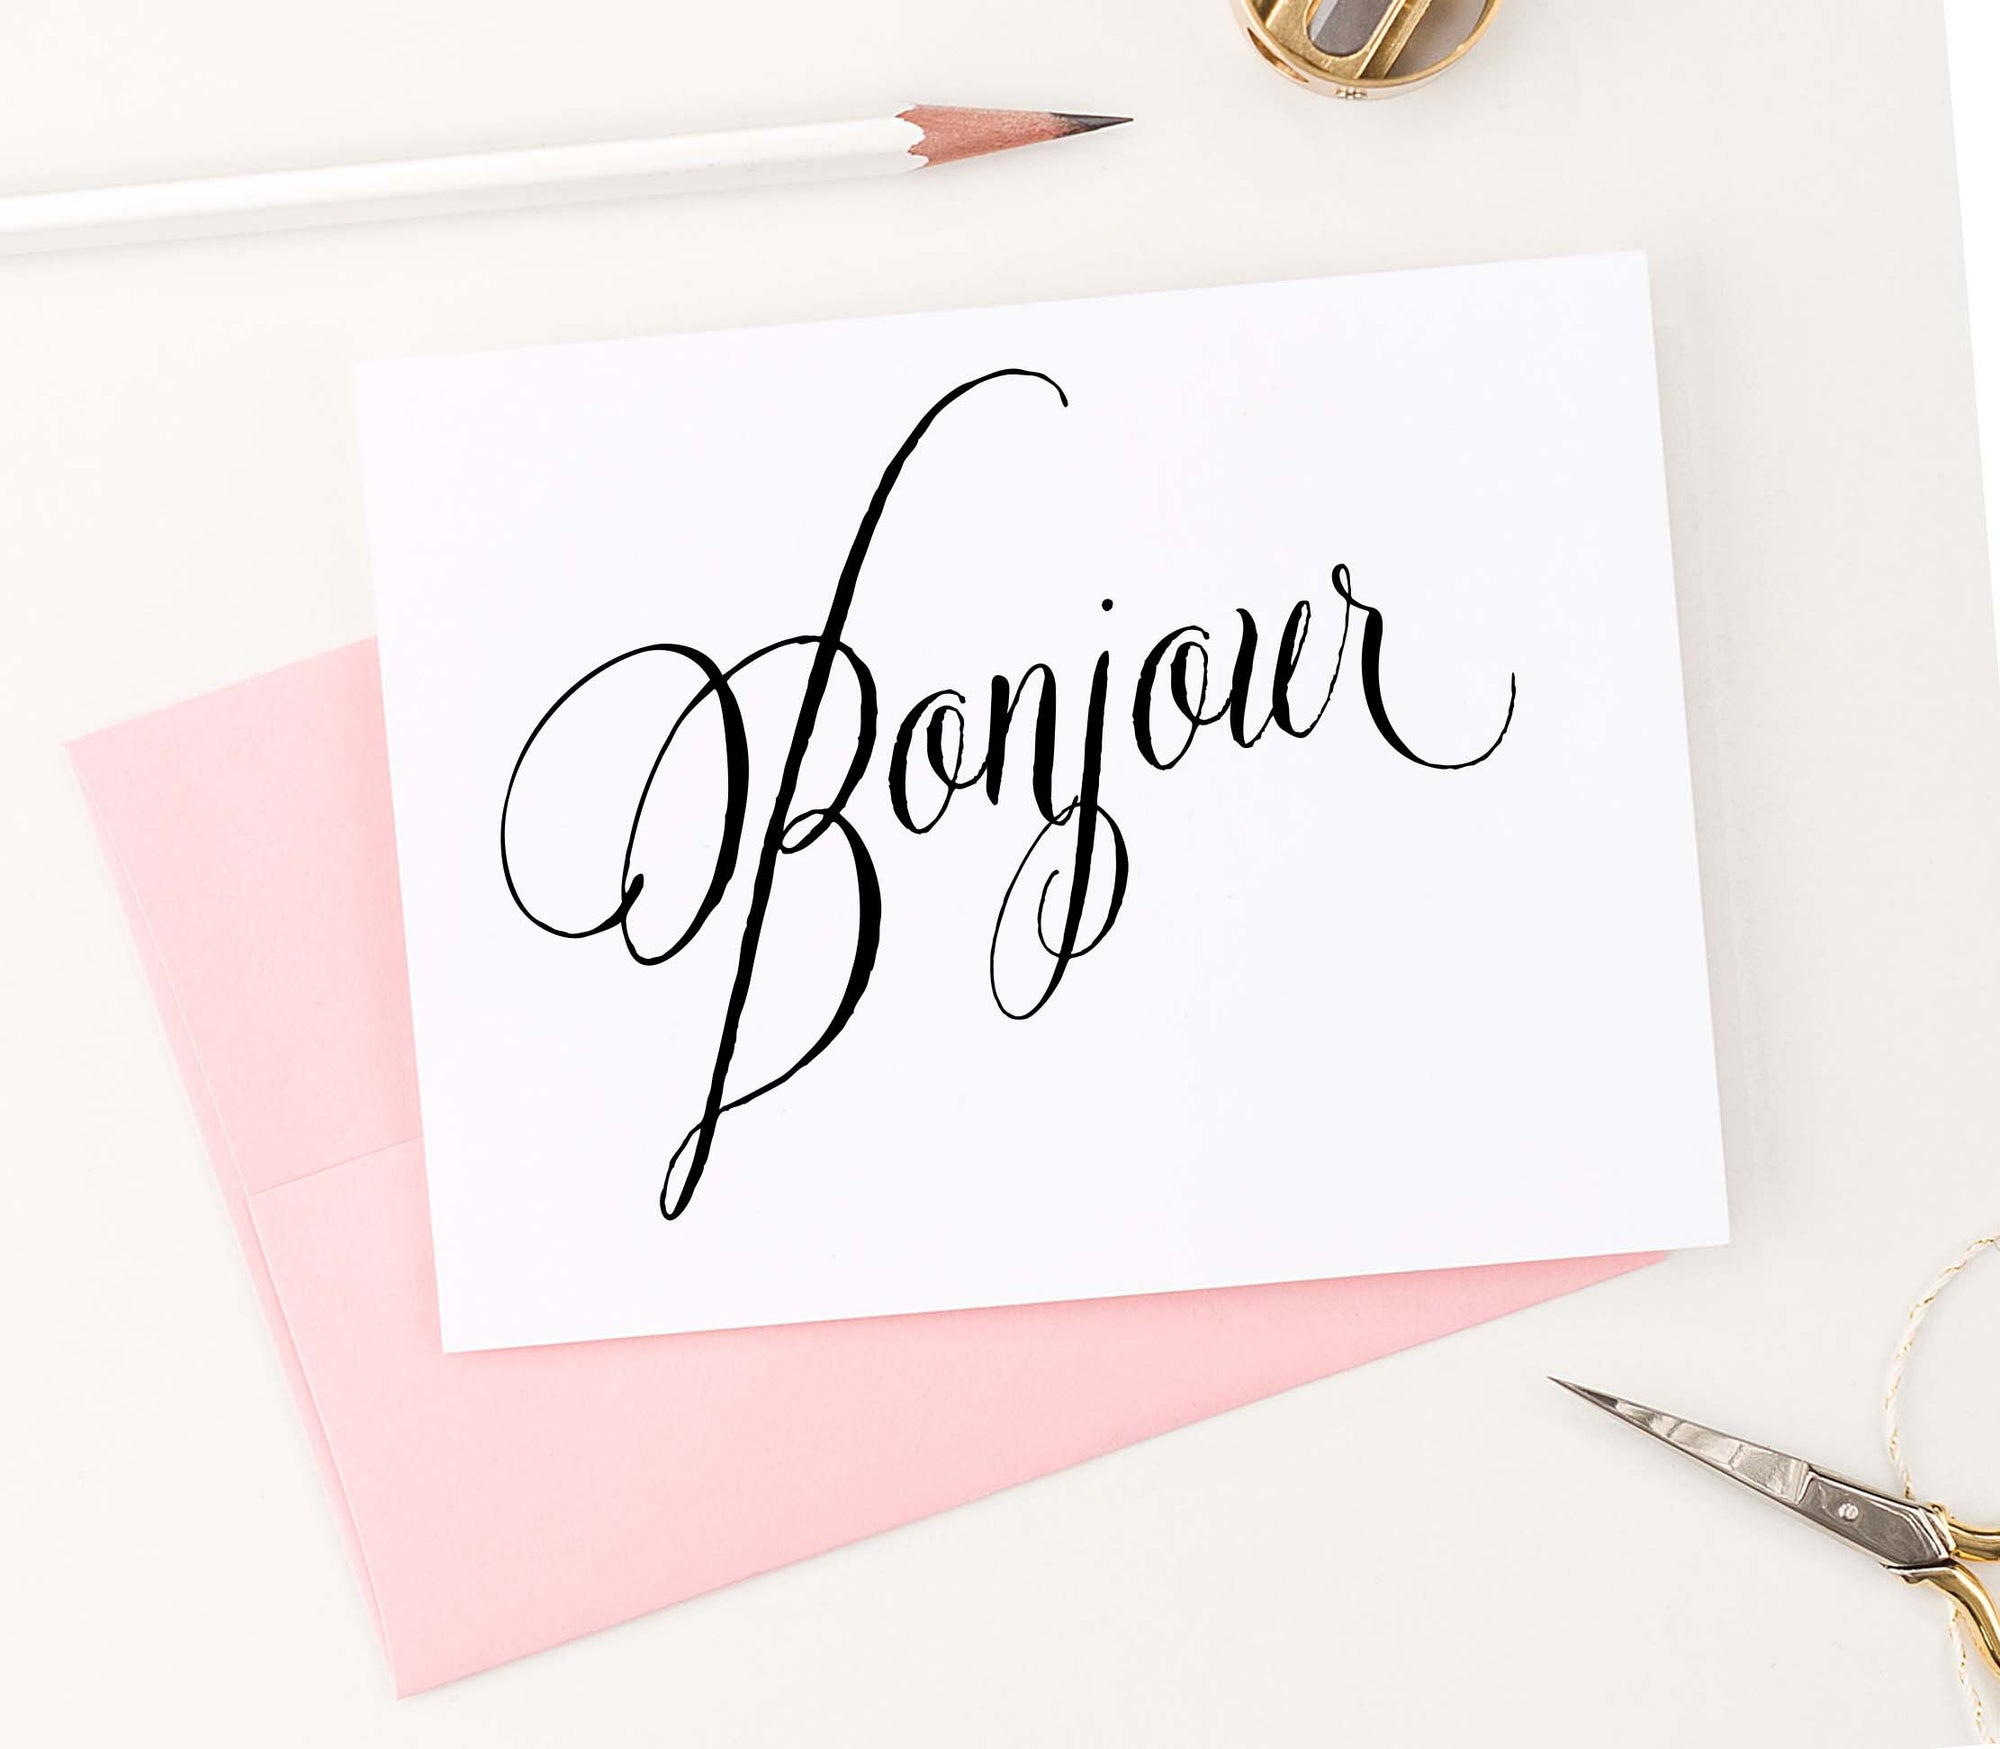 TY003 bonjour folded thank you cards elegant script simple